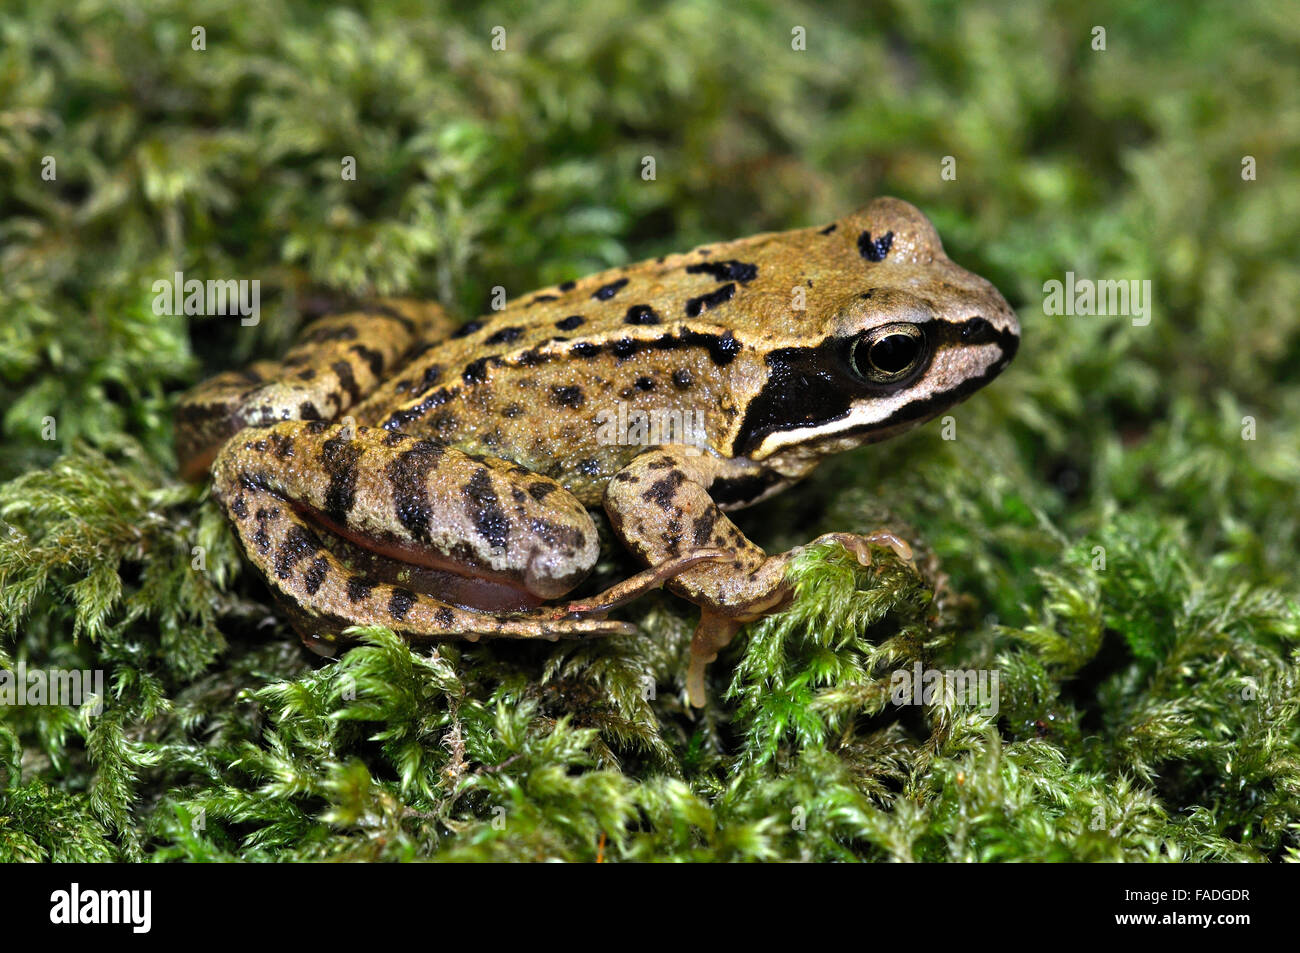 Juvenile common frog on moss in woodland. Dorset - Stock Image